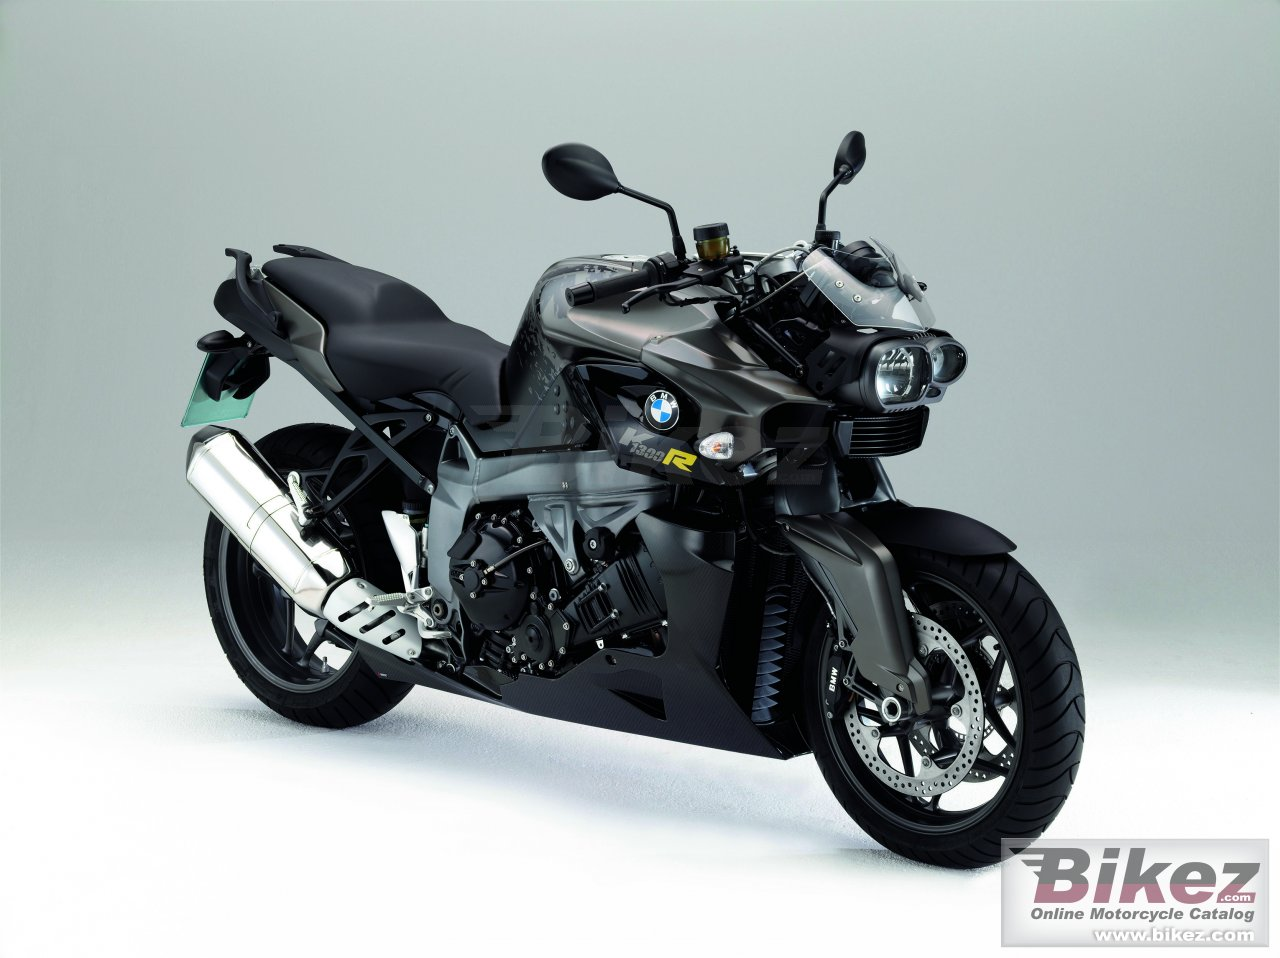 Big BMW k 1300 r picture and wallpaper from Bikez.com